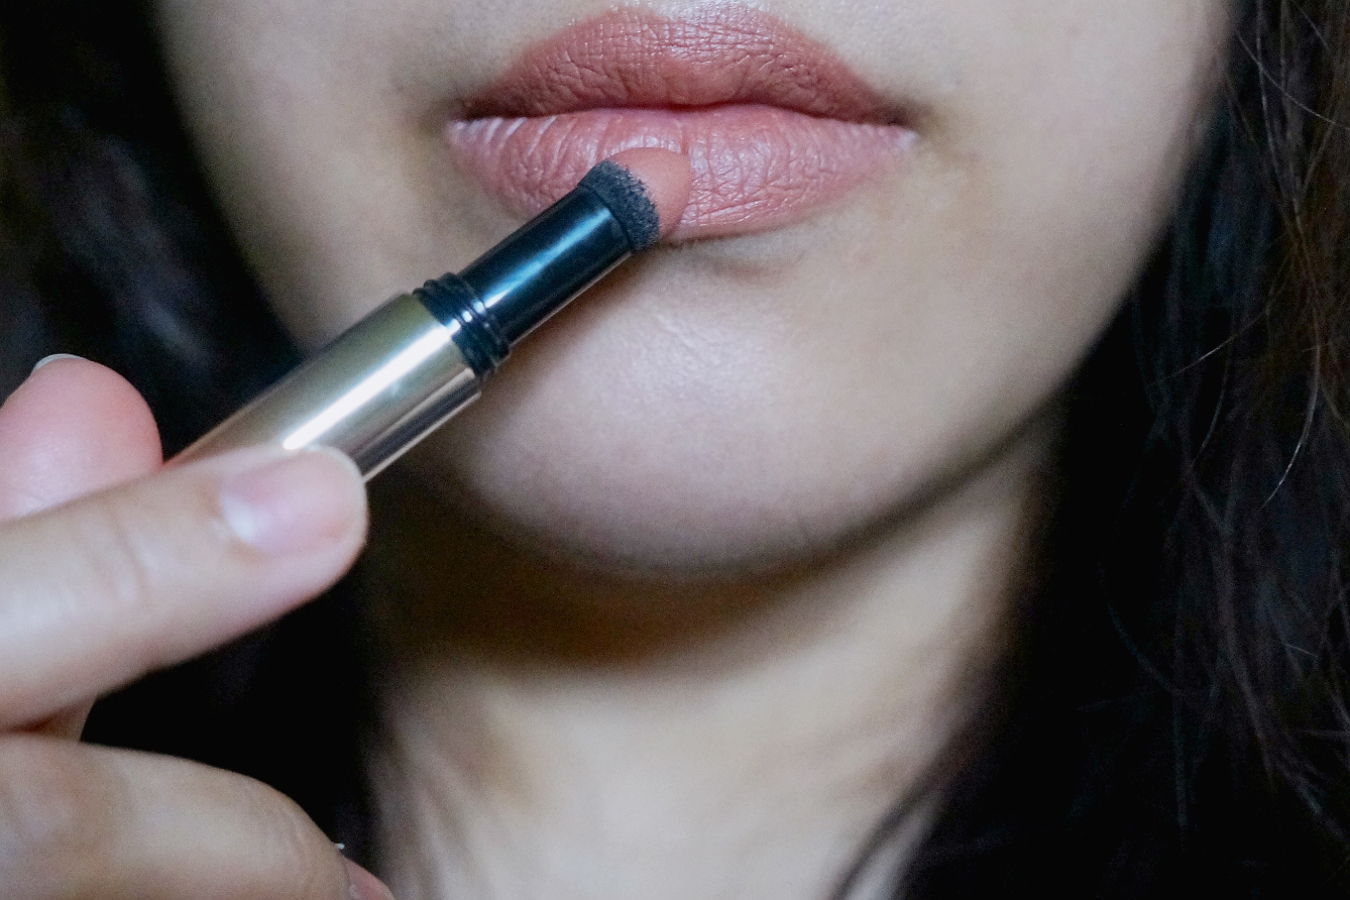 Loreal color caresse by color rich lipstick - L Oreal Color Riche Tint Caresse Powder Lipstick In Lily Blossom B07